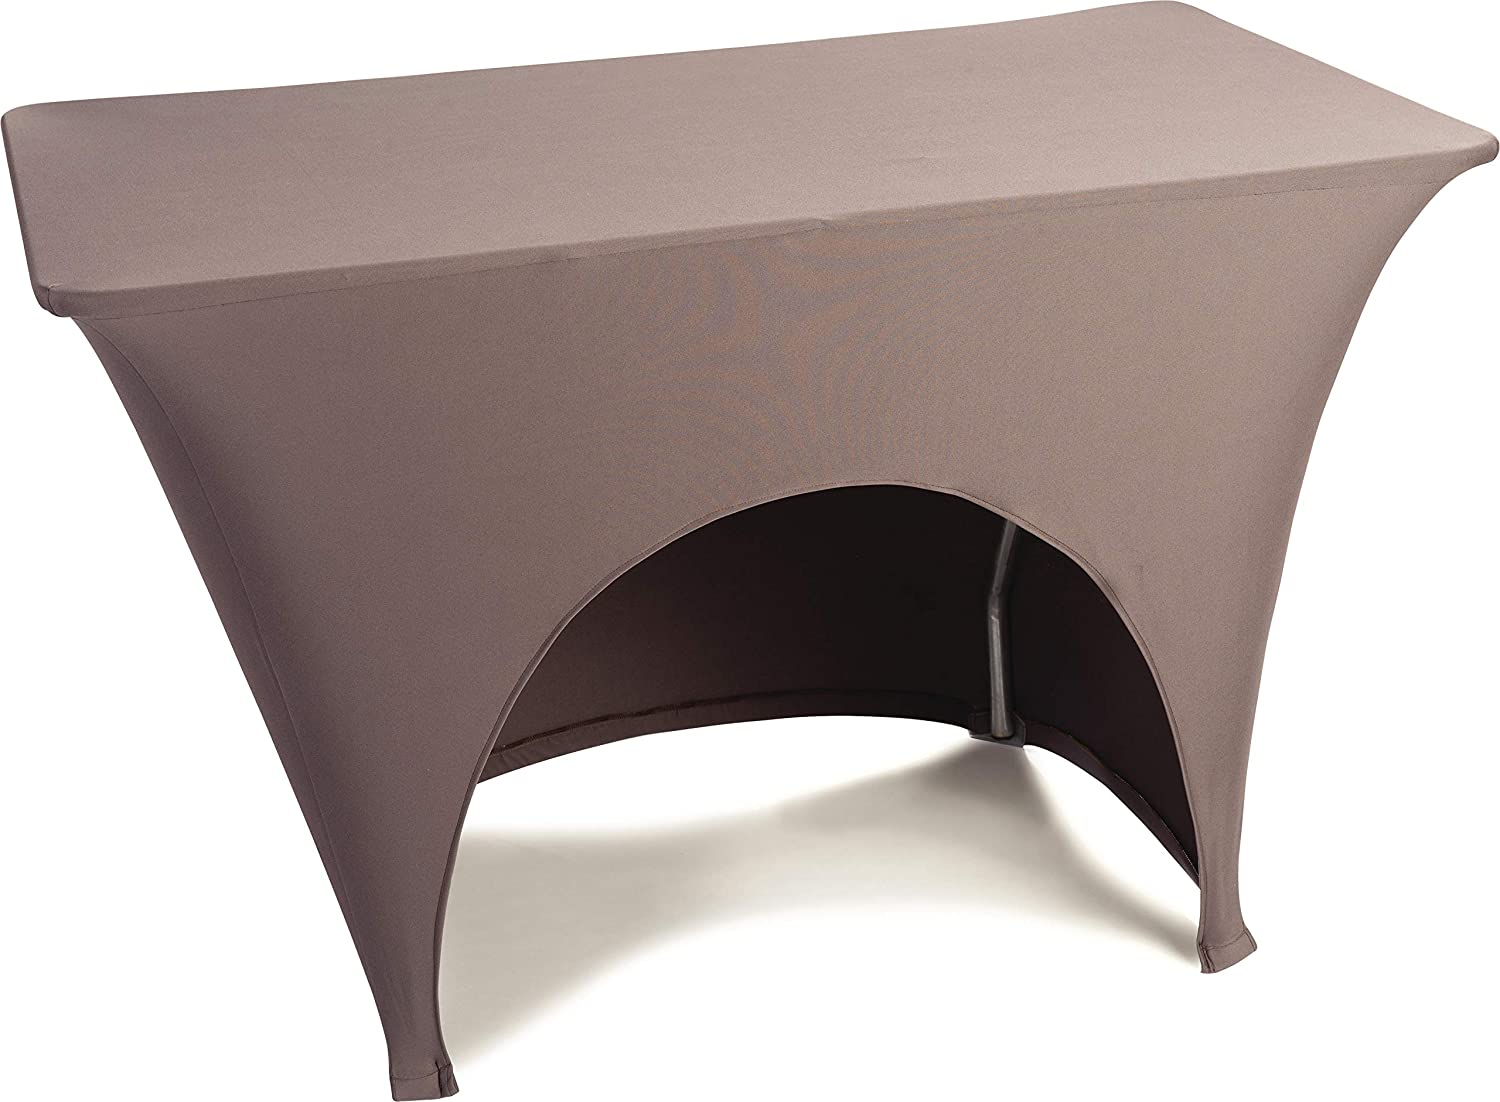 Carlisle Embrace Four-Way High Top Round Stretch Fitted Table Cover